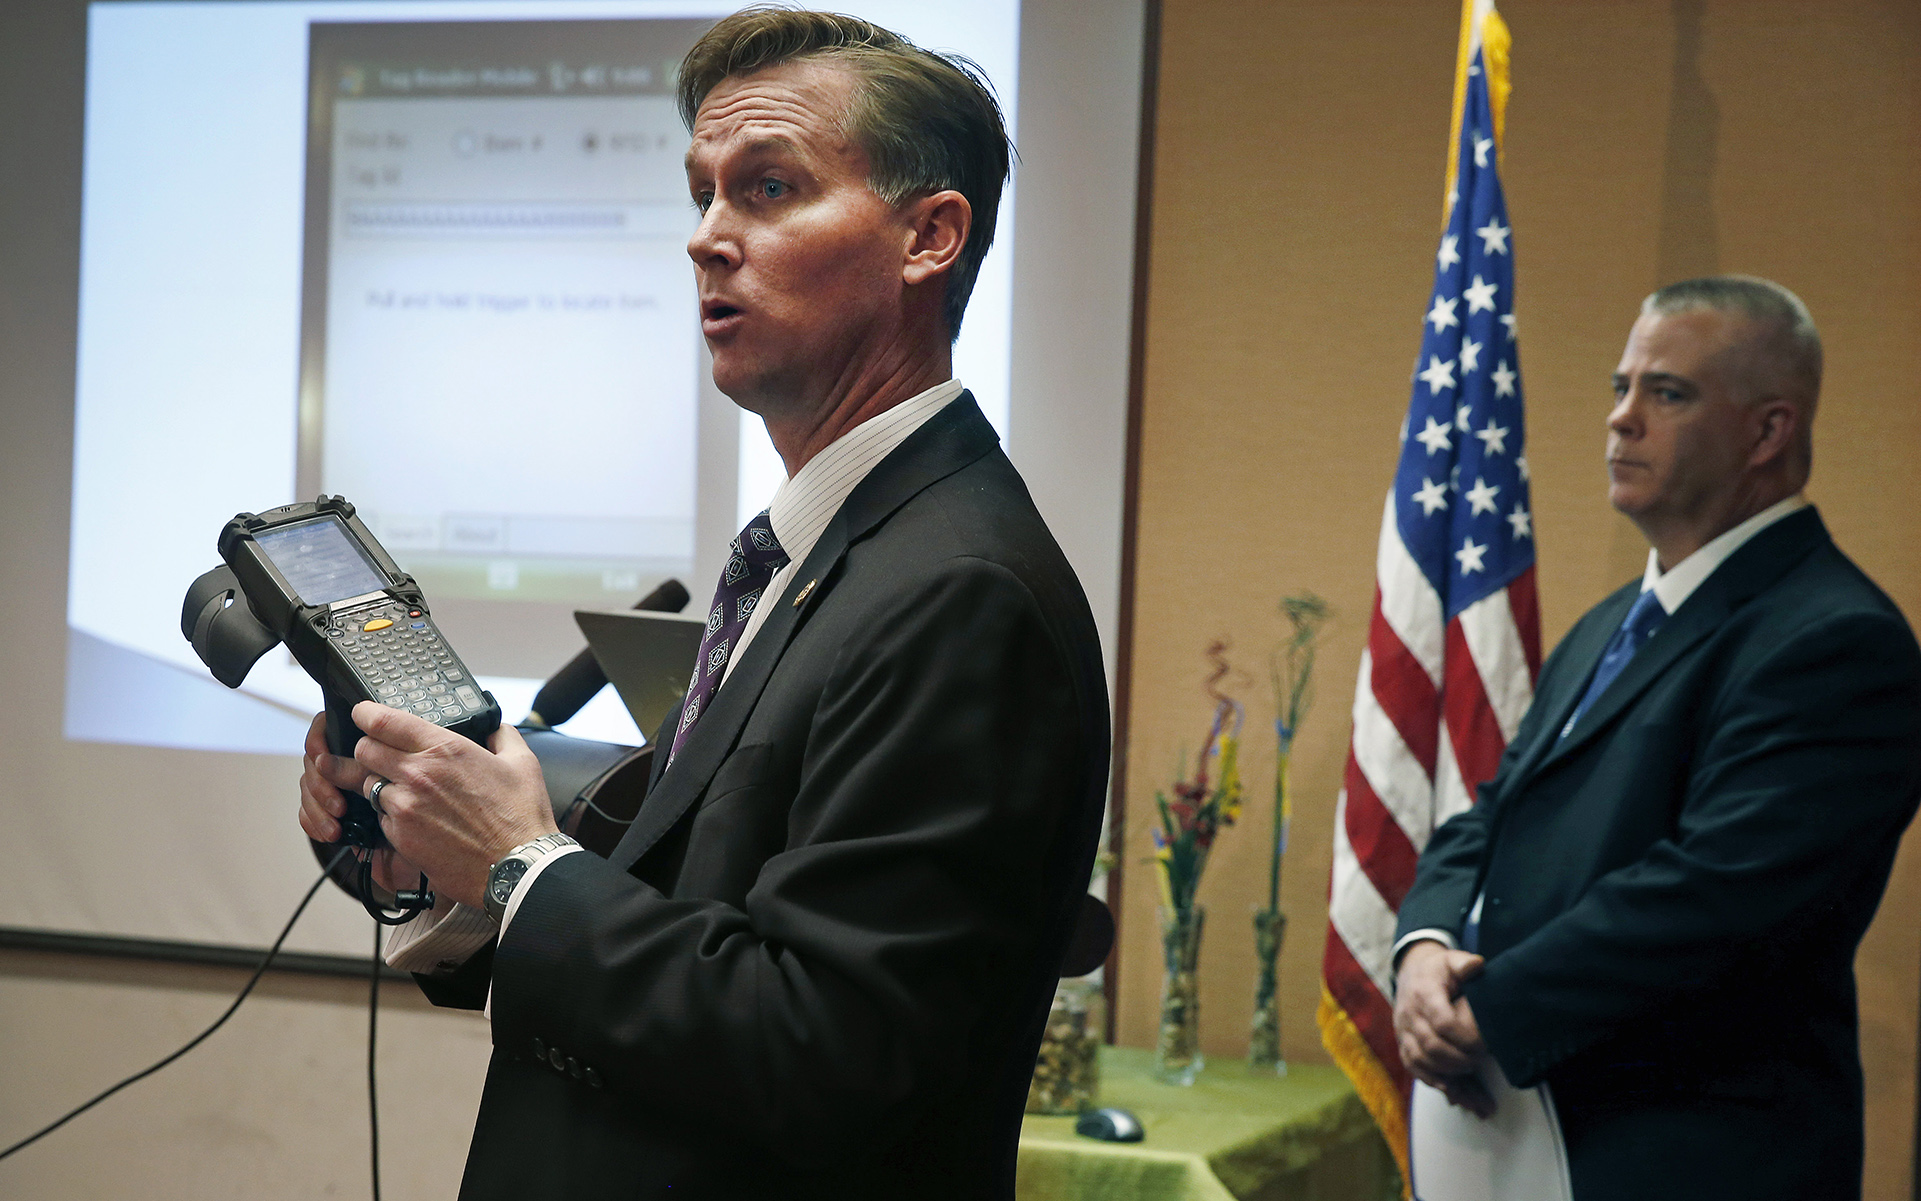 Lewis Koski, left, chief investigator of the Colorado Marijuana Enforcement Division, demonstrates a handheld radio-frequency reader, which is part of its new marijuana inventory tracking system, known as MITS, during a news conference, in Denver, Wednesday, Dec. 11, 2013. Ron Kammerzell, the senior director of enforcement for the Colorado Dept. of Revenue, is pictured at right. Roughly 150 Colorado medical marijuana dispensaries are hoping to begin selling to recreational users when it becomes legal to sell on Jan. 1, 2014. (AP Photo/Brennan Linsley)